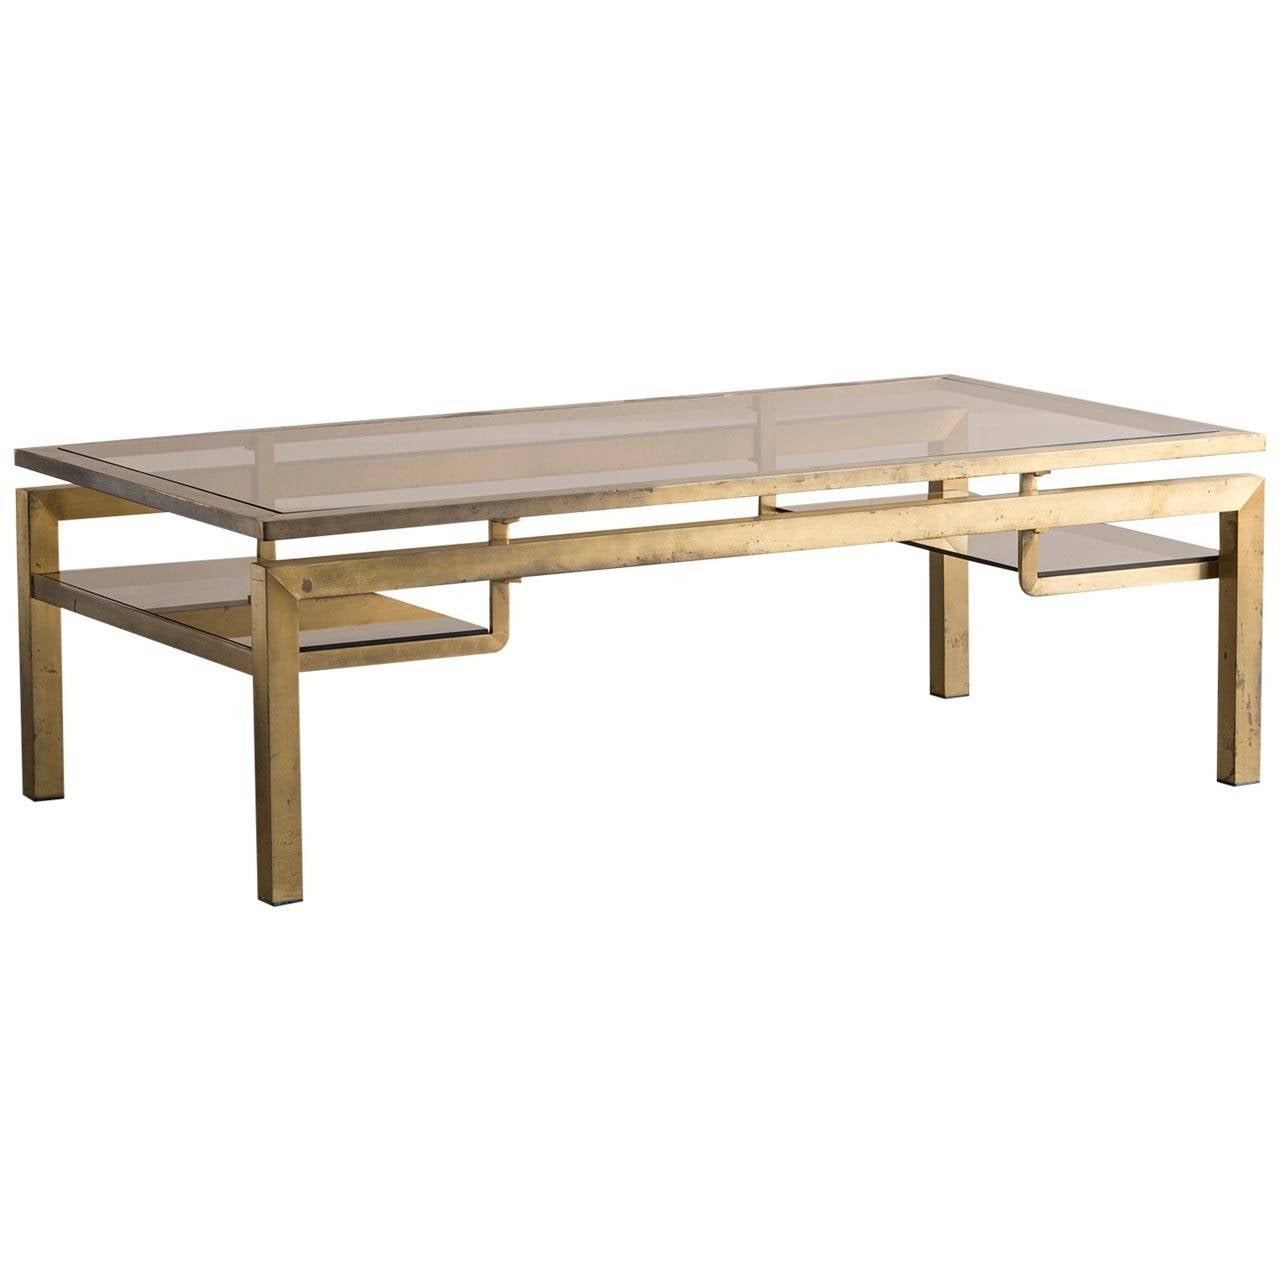 Vintage Brass Coffee Table With Smoked Glass Top France Circa 1970 At 1stdibs